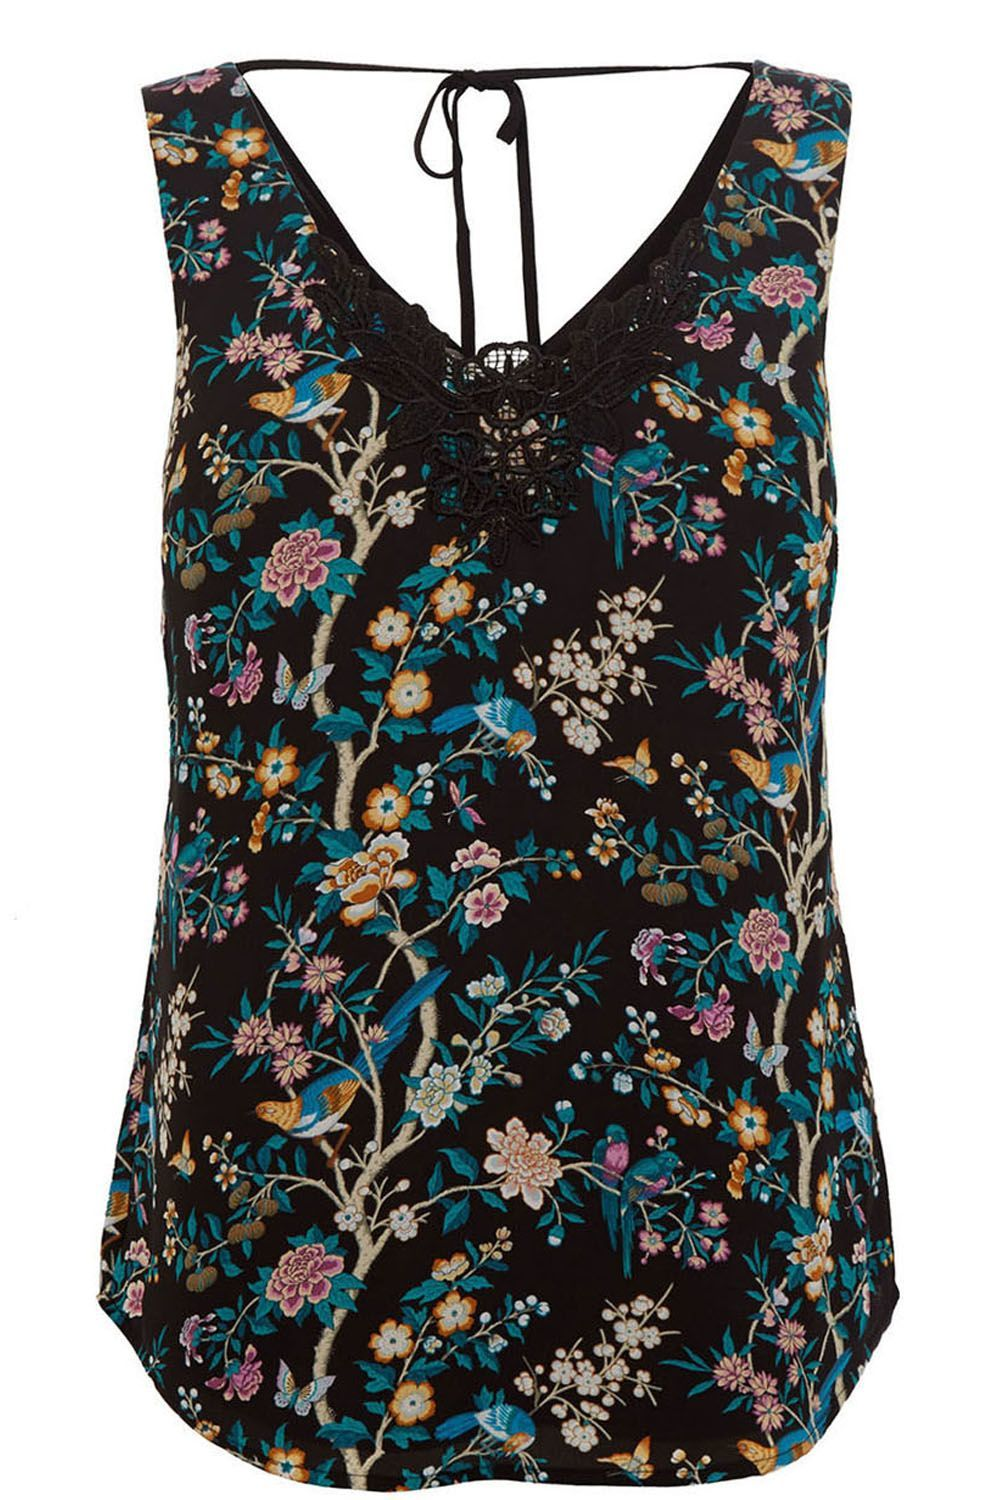 V&A Vest, Black - neckline: low v-neck; sleeve style: standard vest straps/shoulder straps; style: vest top; back detail: tie detail at back; secondary colour: teal; predominant colour: black; occasions: casual; length: standard; fibres: polyester/polyamide - 100%; fit: straight cut; sleeve length: sleeveless; pattern type: fabric; pattern size: standard; pattern: florals; texture group: woven light midweight; embellishment: lace; multicoloured: multicoloured; season: a/w 2016; wardrobe: highlight